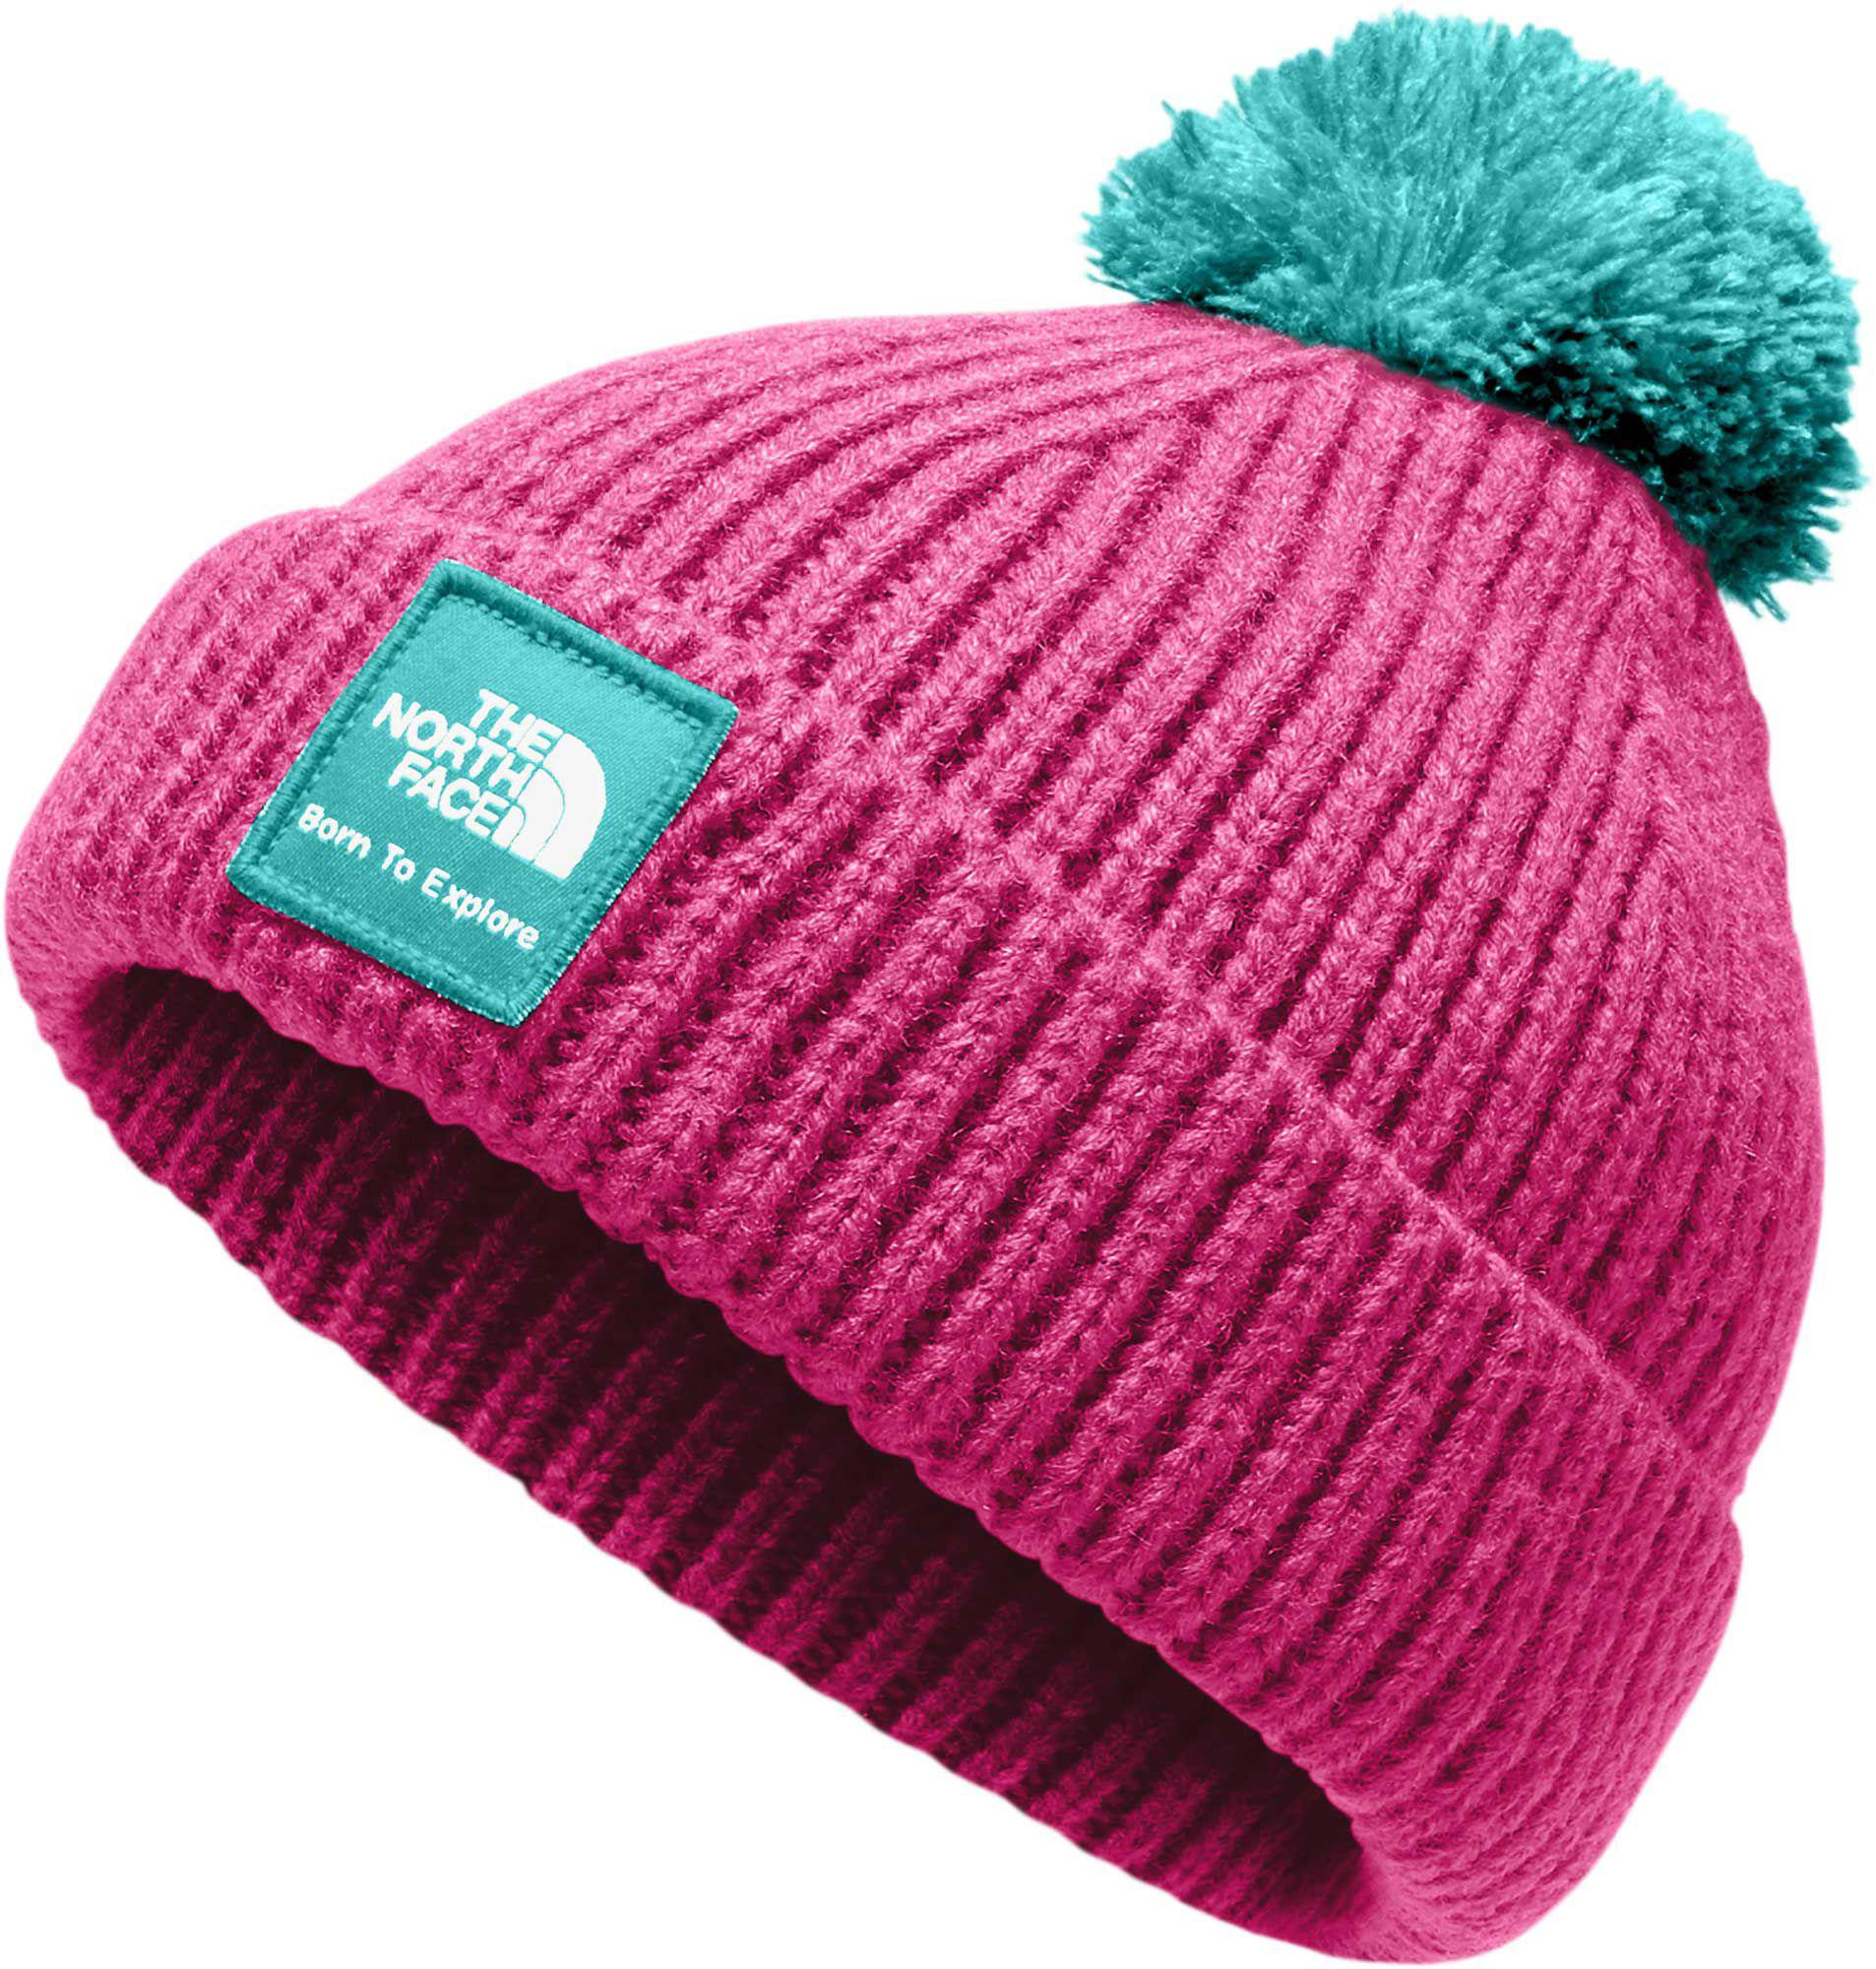 be39750cbb4 Lyst - The North Face Infant Baby Box Logo Pom Beanie in Pink